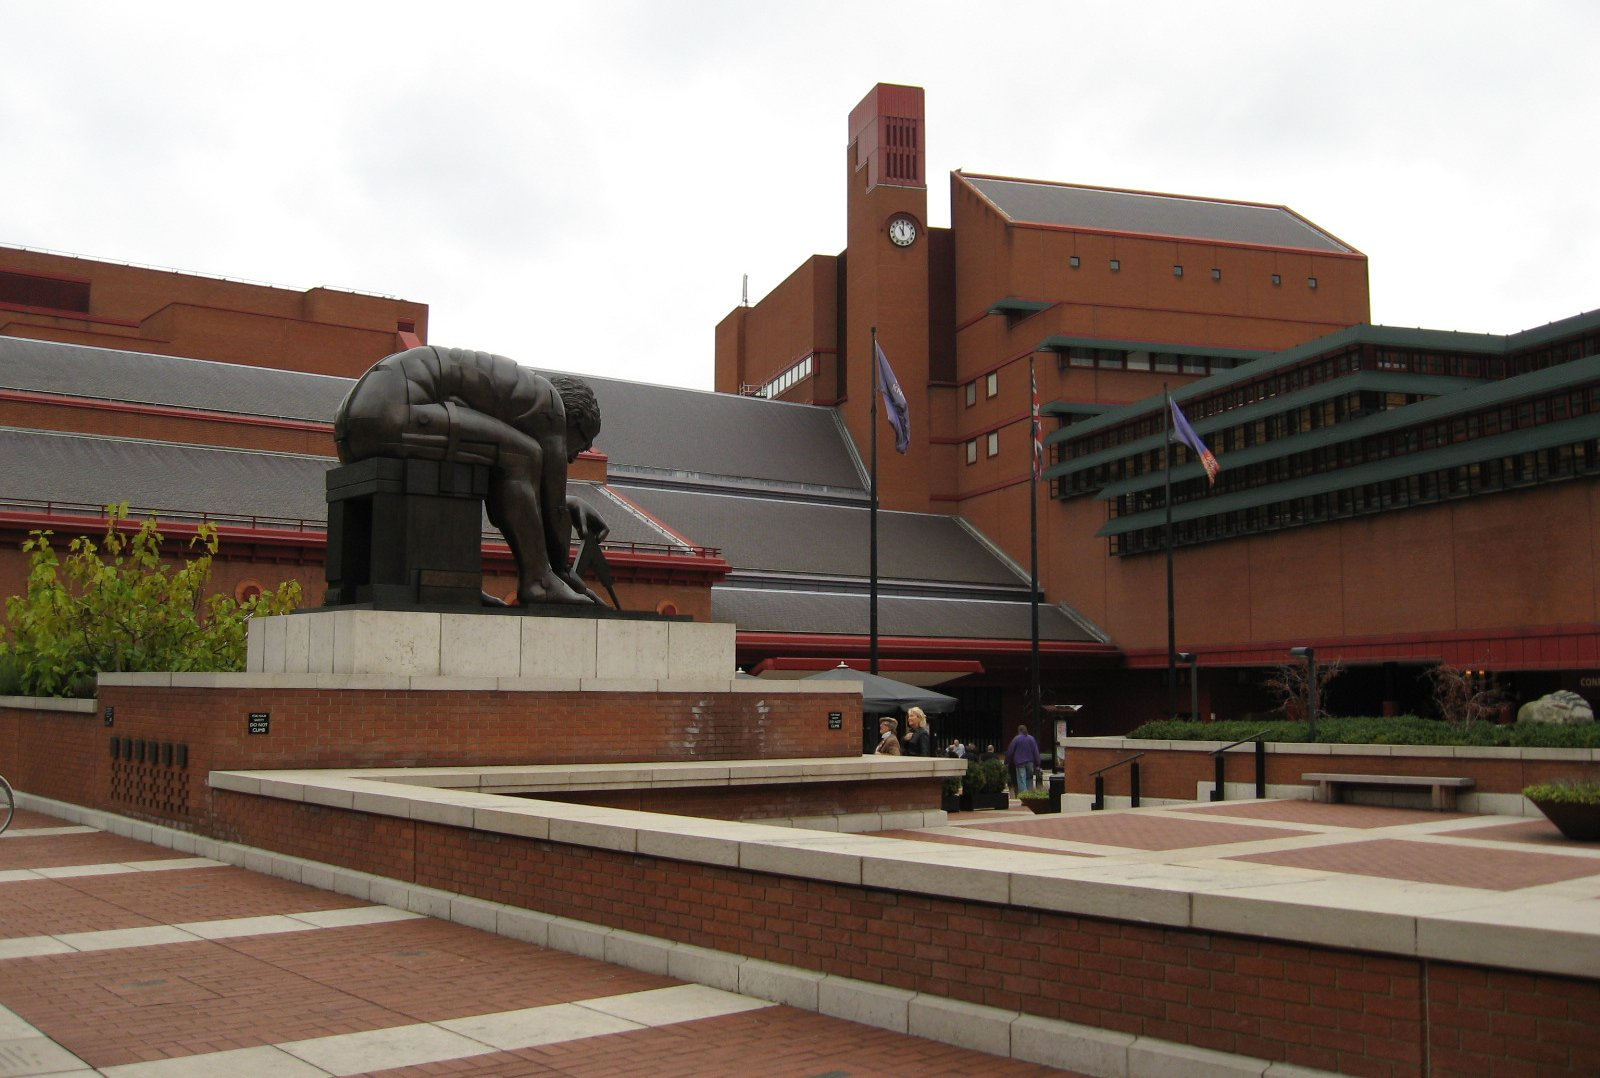 British_library_london.jpg